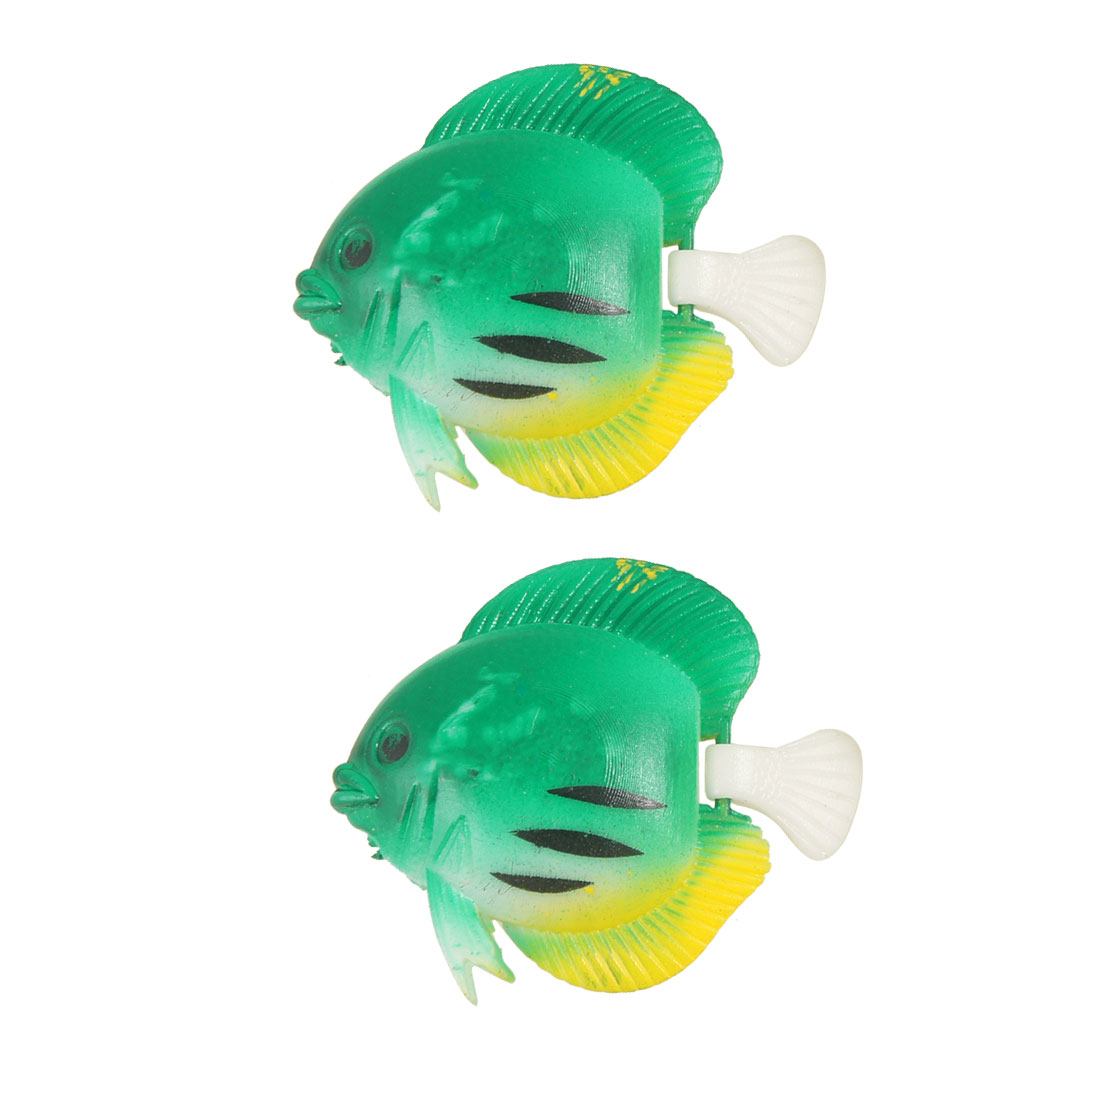 Green Plastic Wiggly Tail Swim Vividly Artificial Fish 2 Pcs